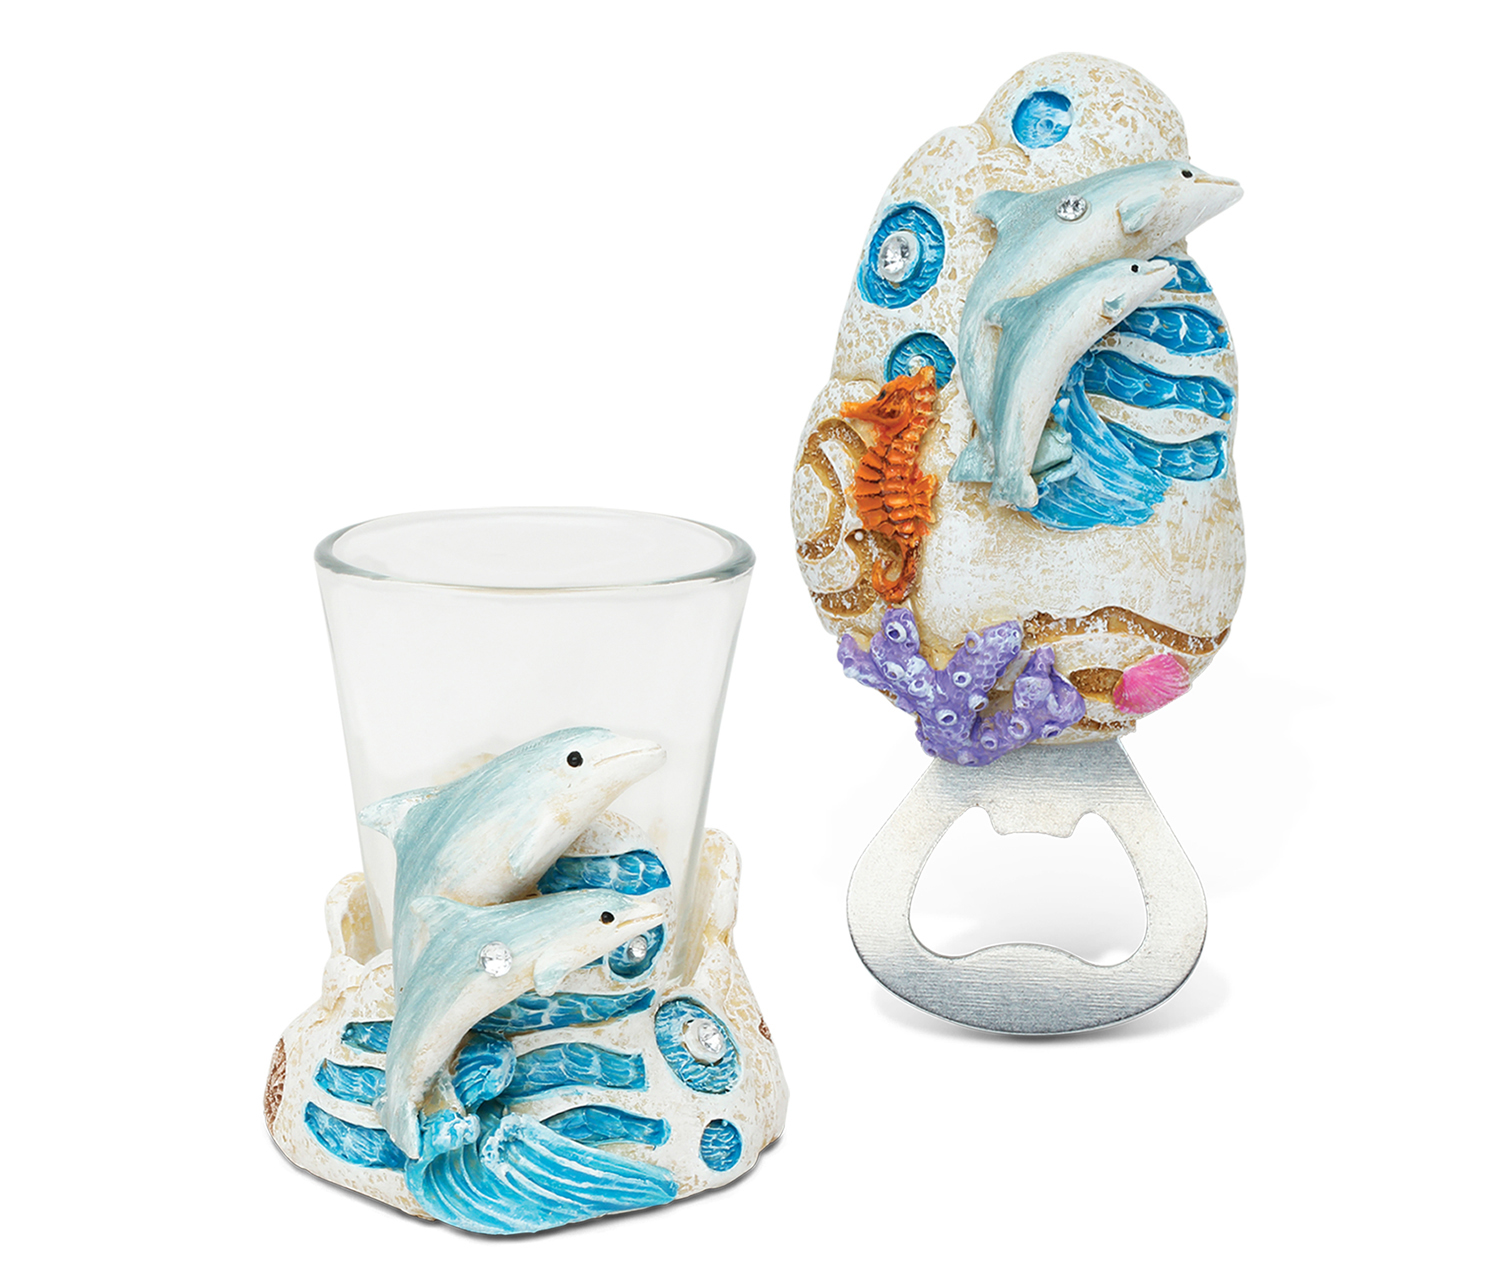 """Puzzled Unique Elegant Gift and Souvenir Dolphin Resin Stone Finish Collection Magnet Bottle Opener and Shot Glass (Size: 5""""L x 3""""W x 4.5""""H), Multi (Plastic)"""